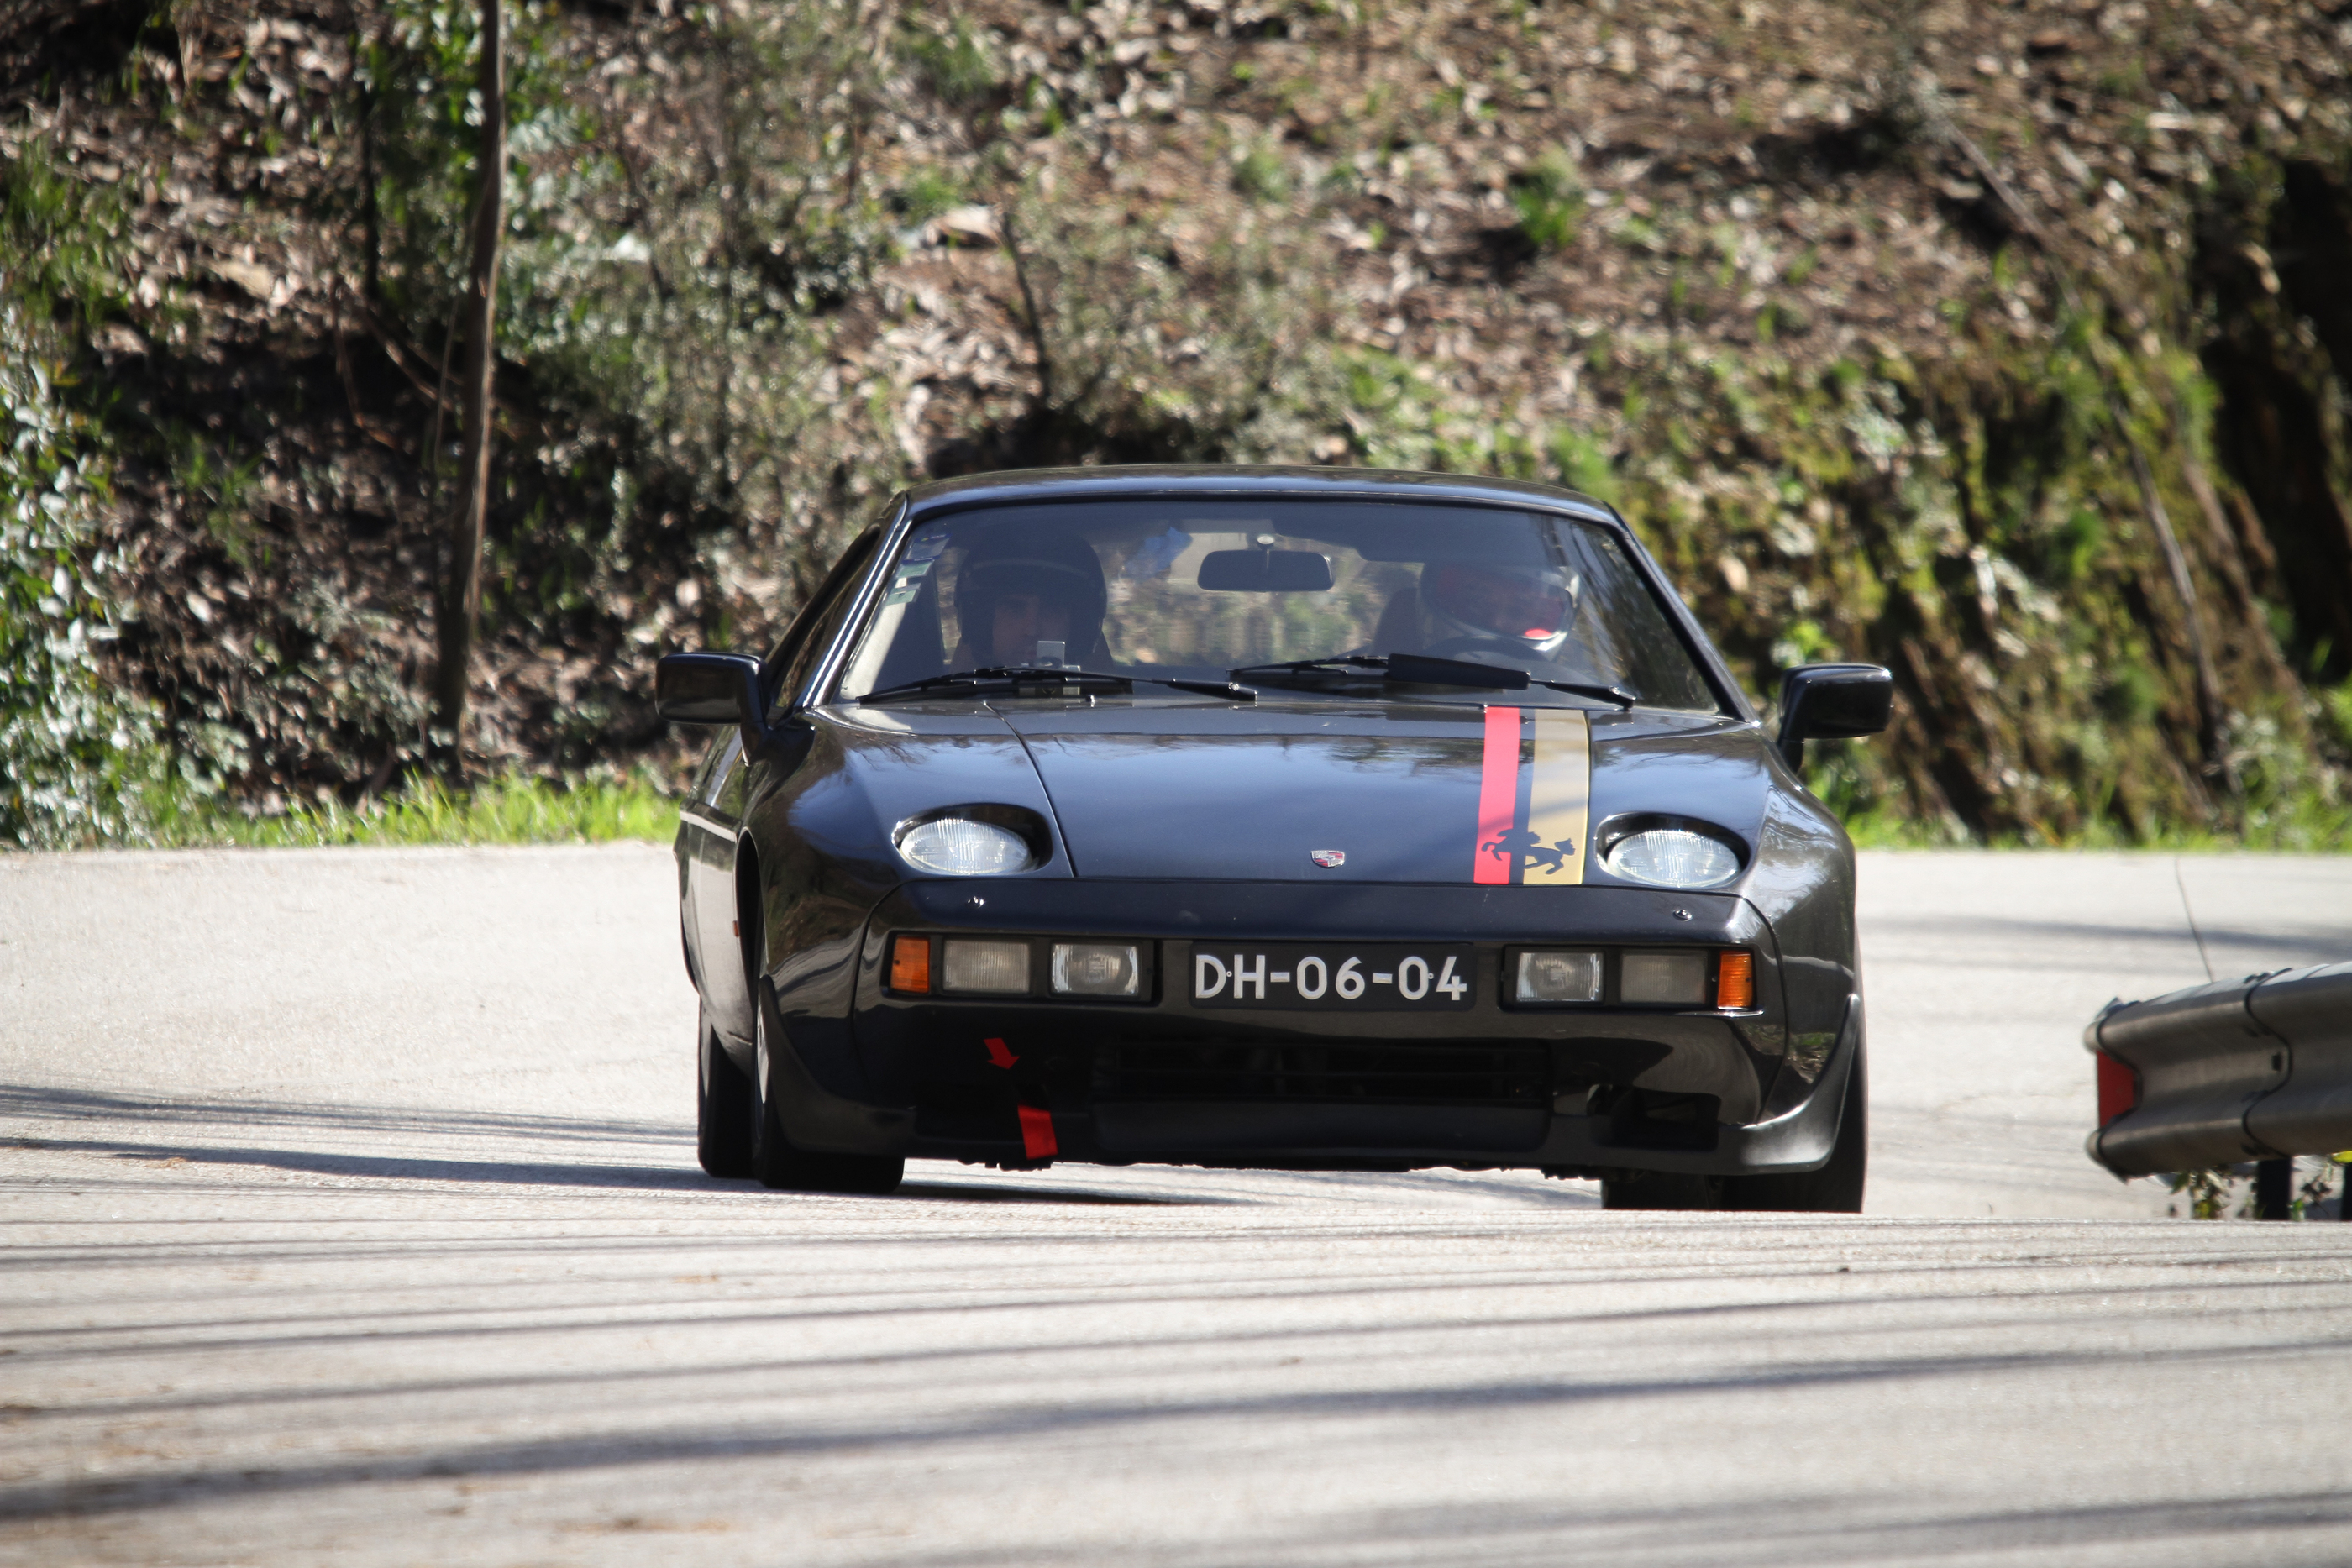 LEIRIA, PORTUGAL - FEBRUARY 2: LUIS CAXEIRO DRIVES A PORSCHE 928 S DURING 2013 AMATEUR WINTER RALLY, BY COISAX